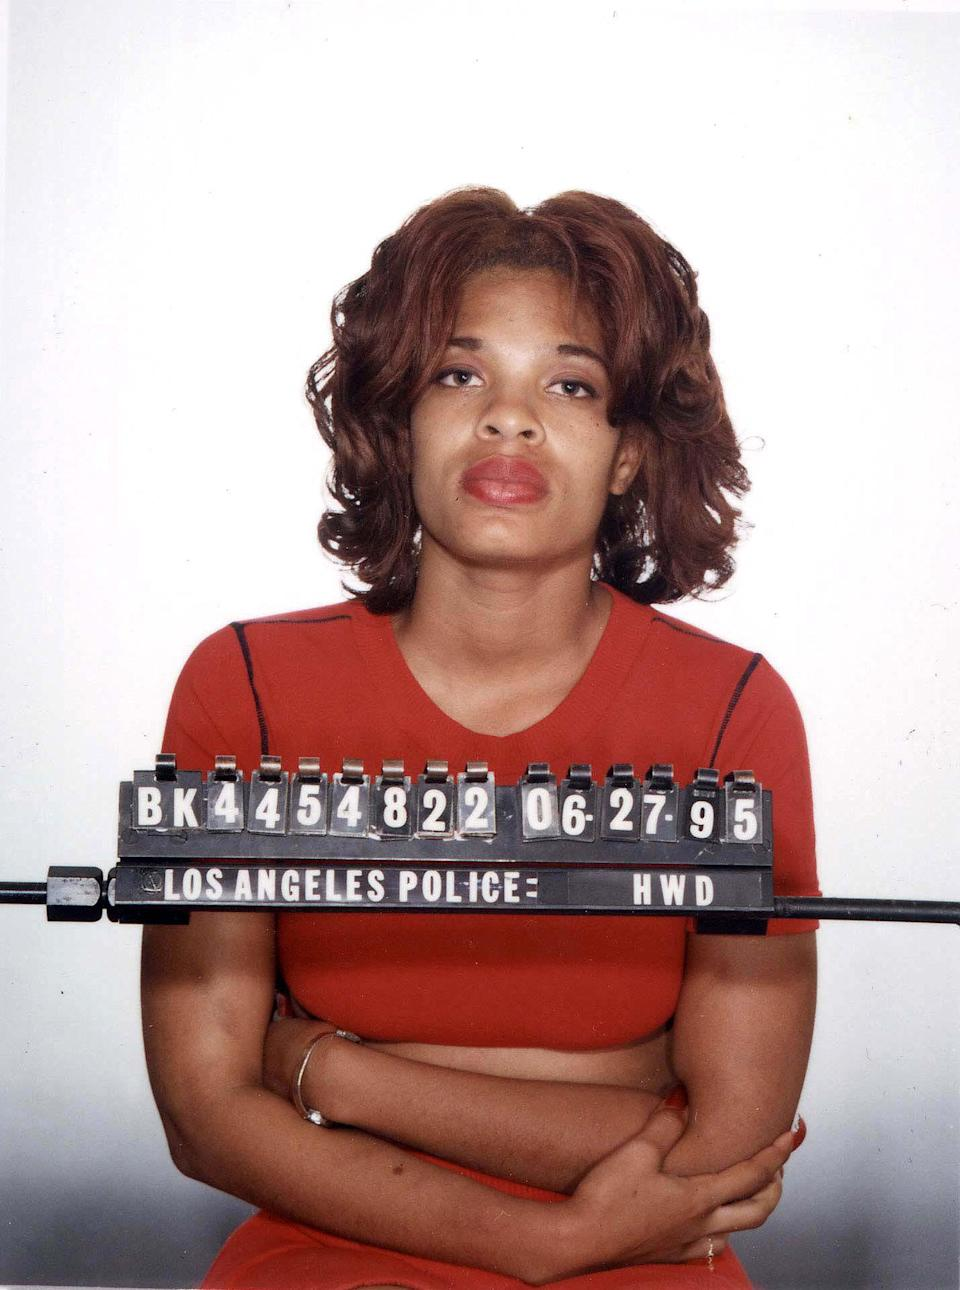 Divine Brown, the prostitute arrested with actor Hugh Grant in Los Angeles, California (Photo by Steve Granitz/WireImage)